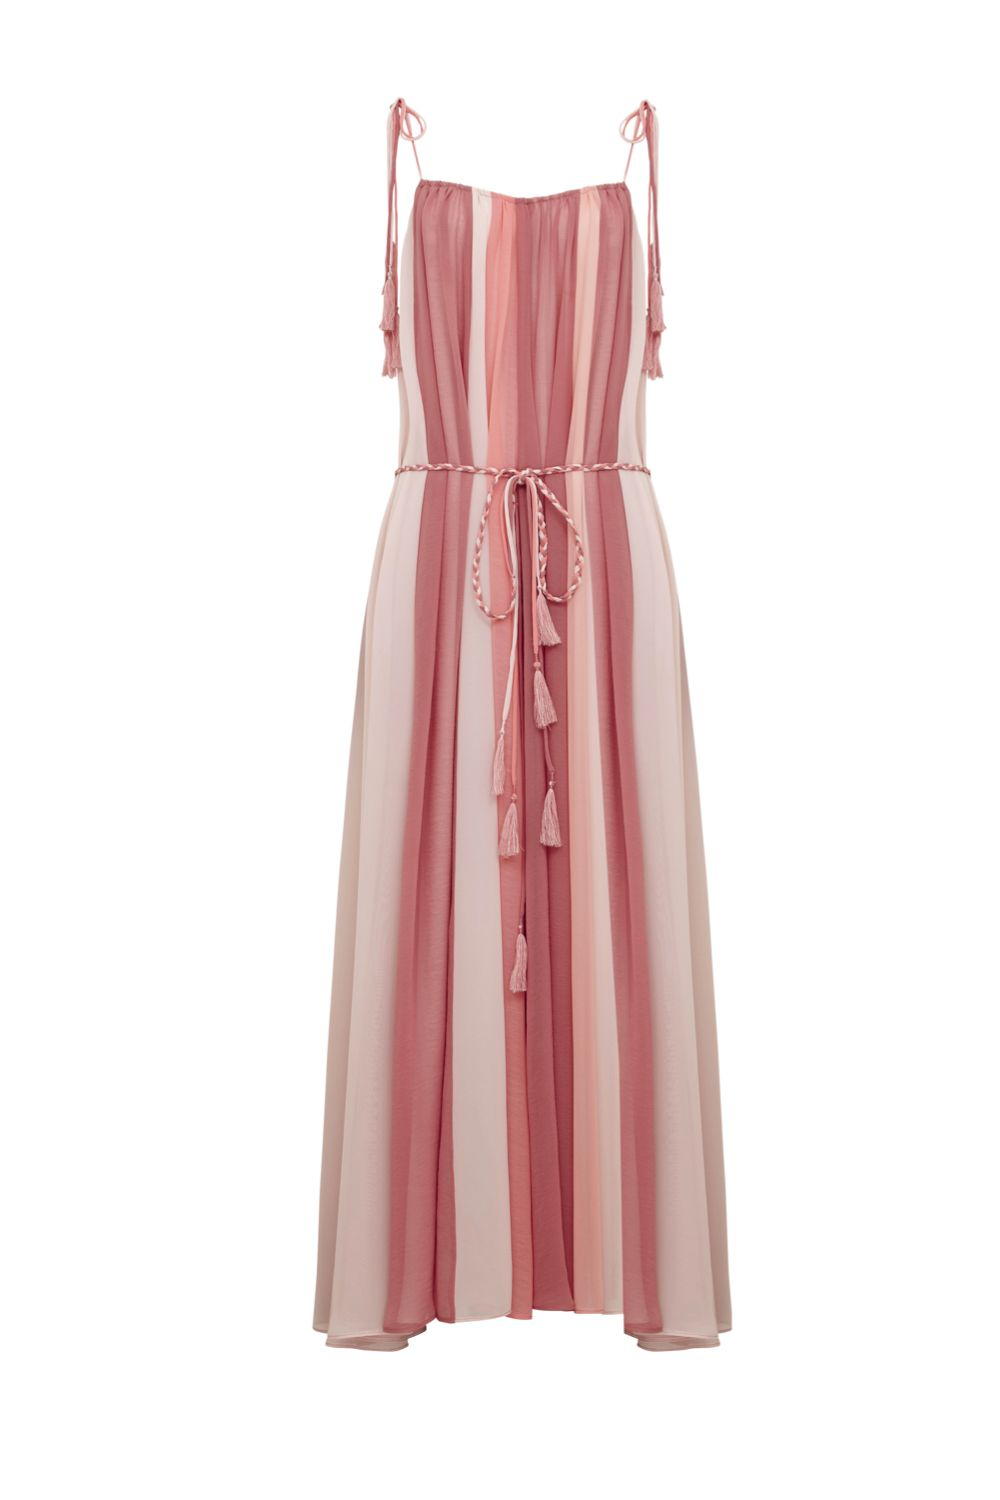 23 gorgeous wedding guest dresses for spring/summer 2016 | Wedding ...